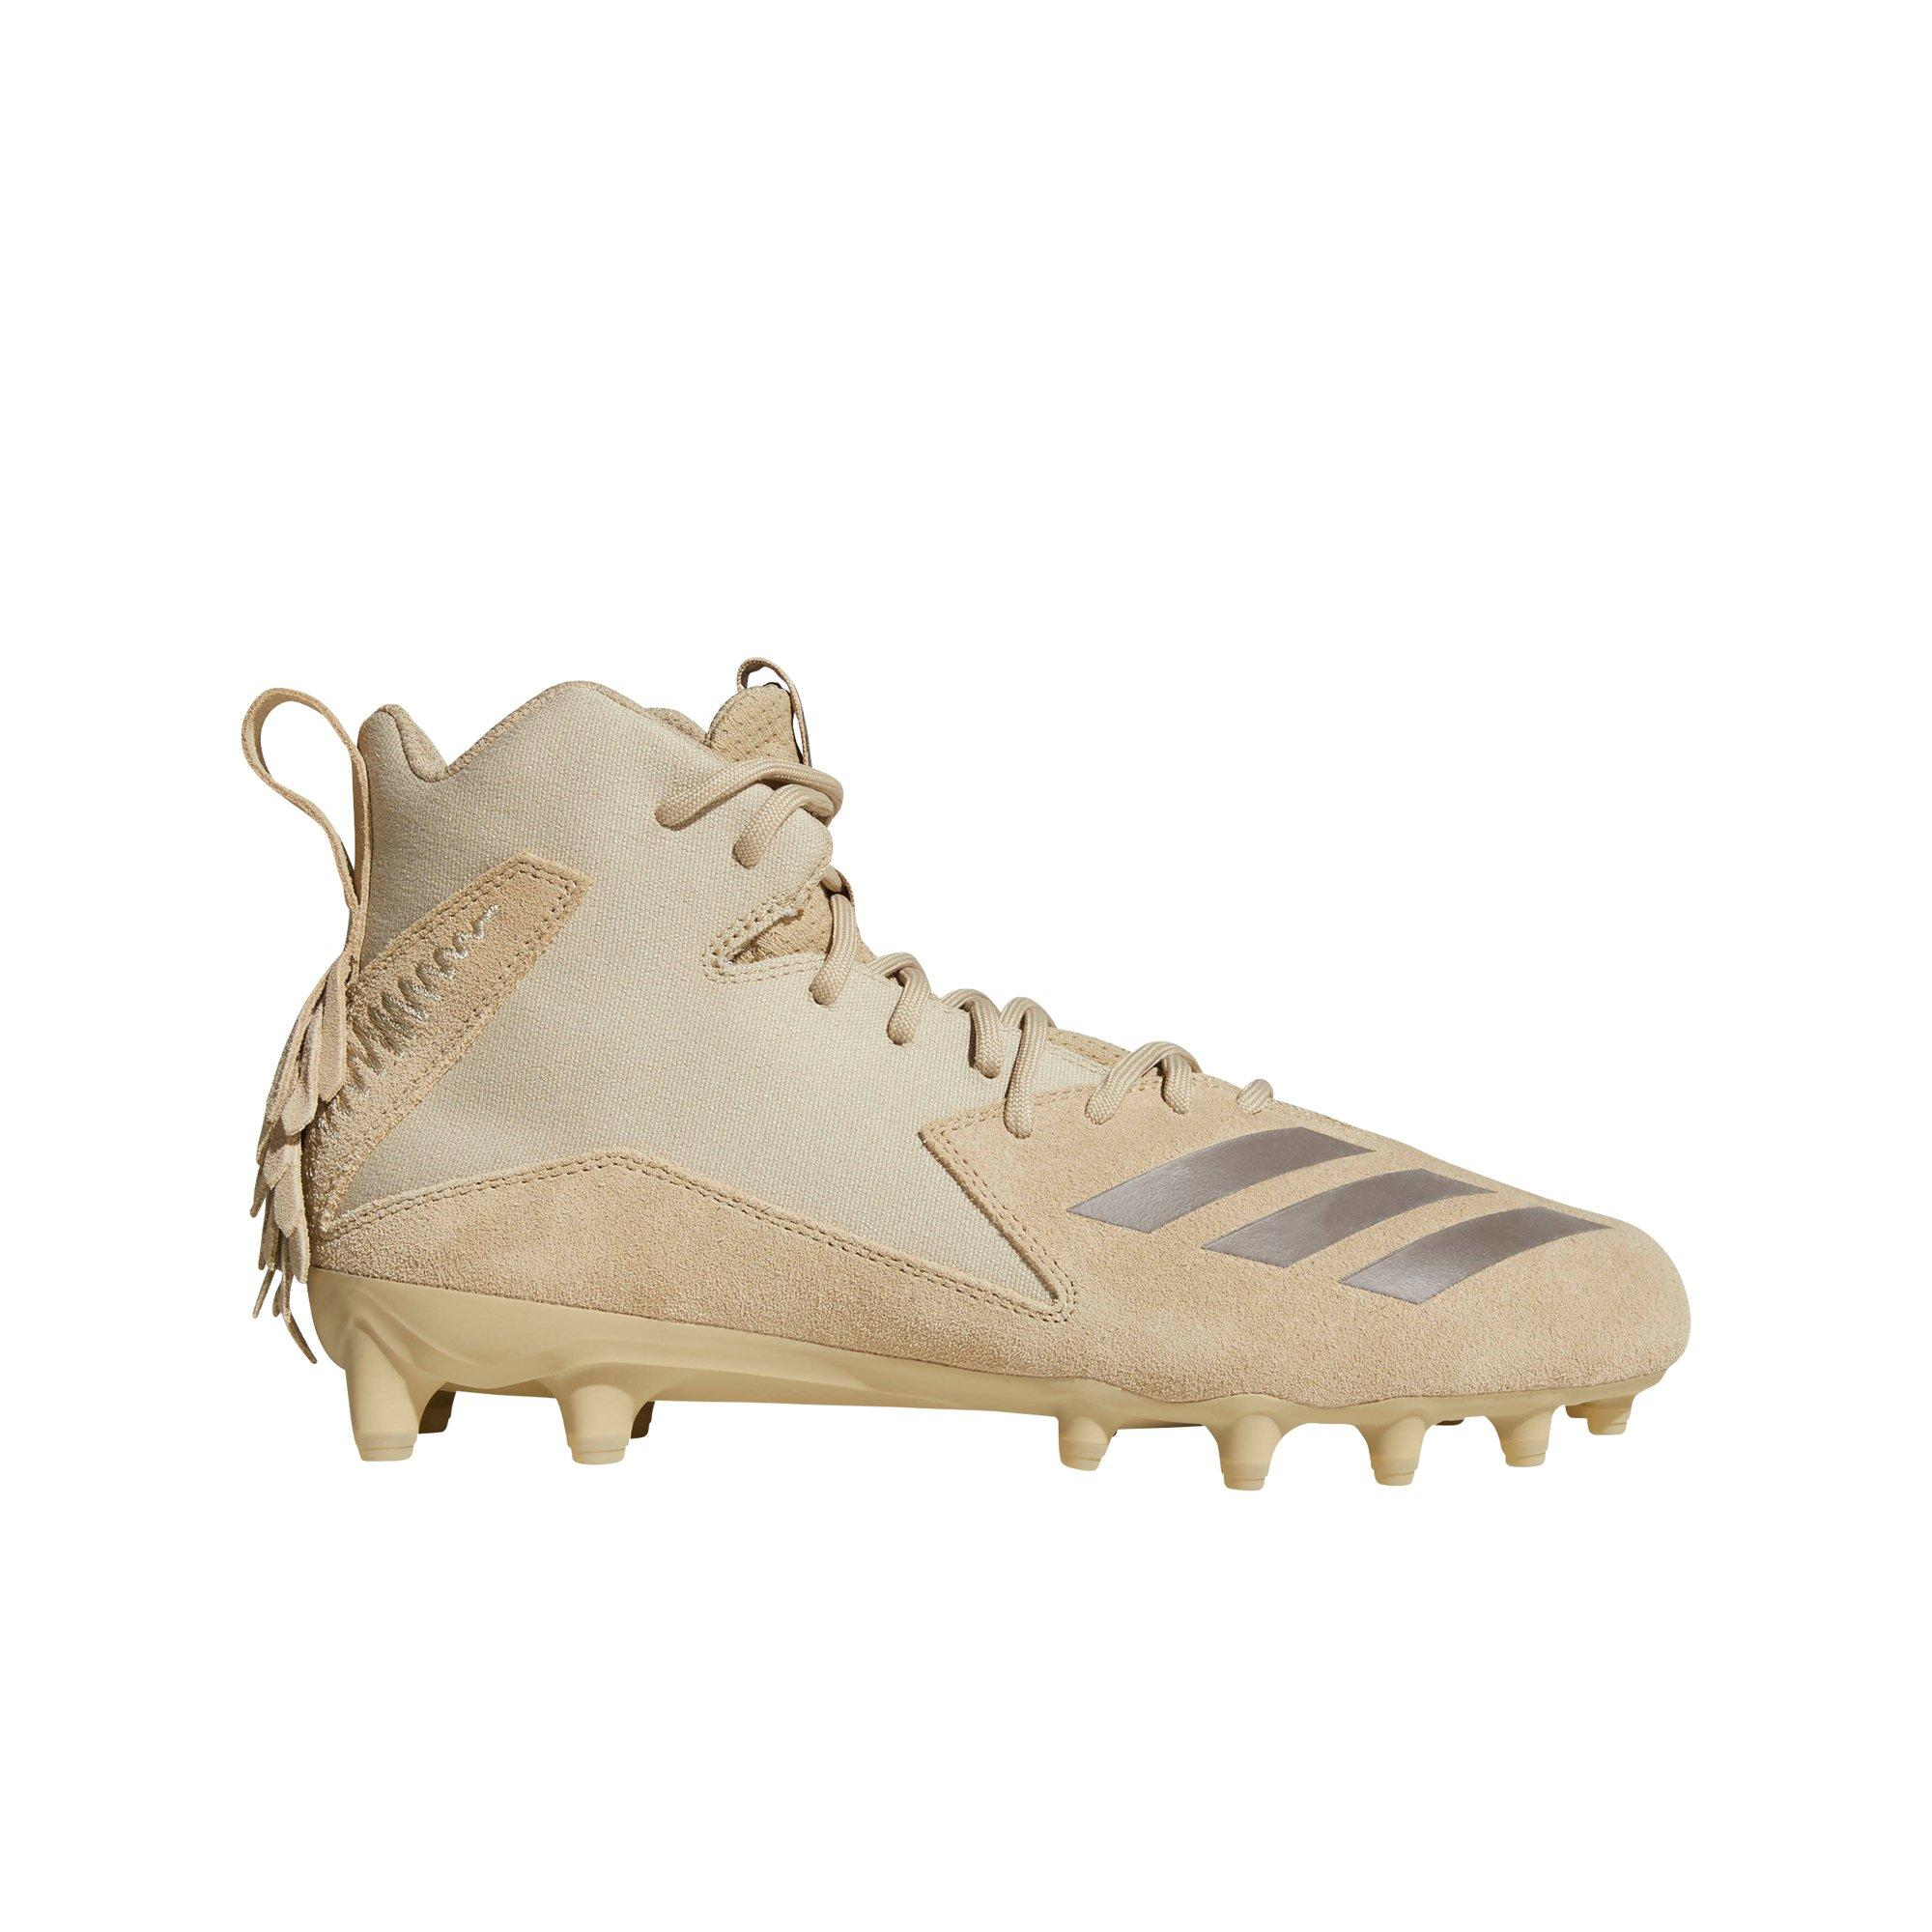 17a8408be260 adidas football cleats gold meilleures offres sur adidas www ...